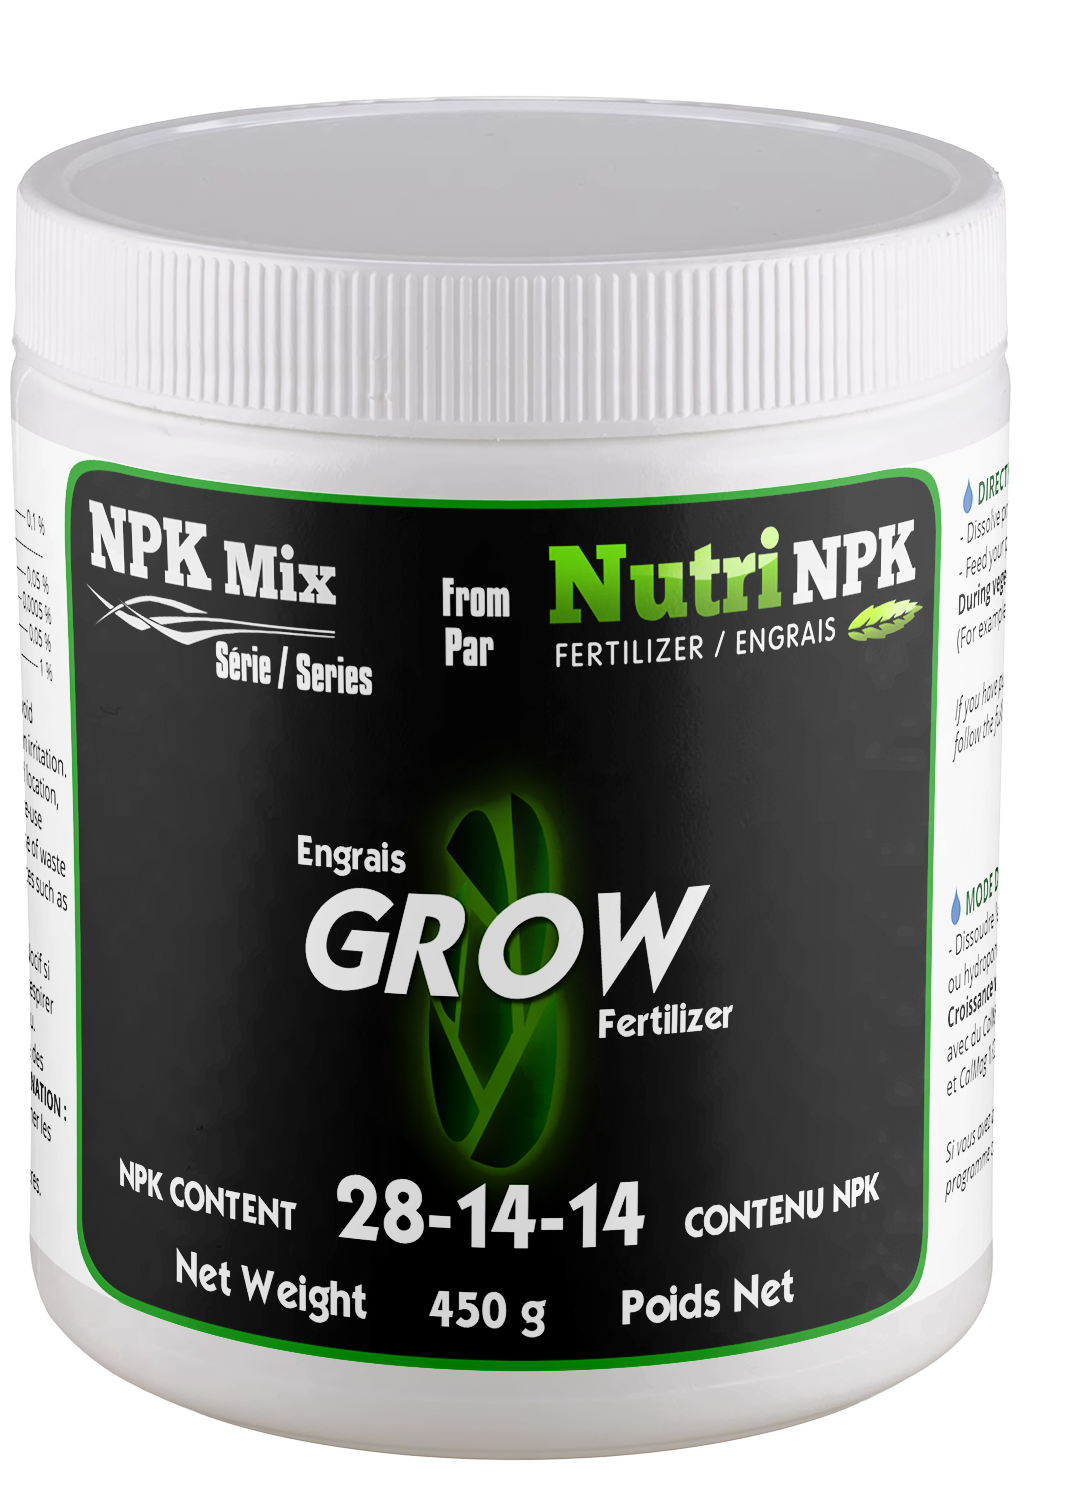 GROW Cannabis Fertilizer - NPK Mix by NutriNPK